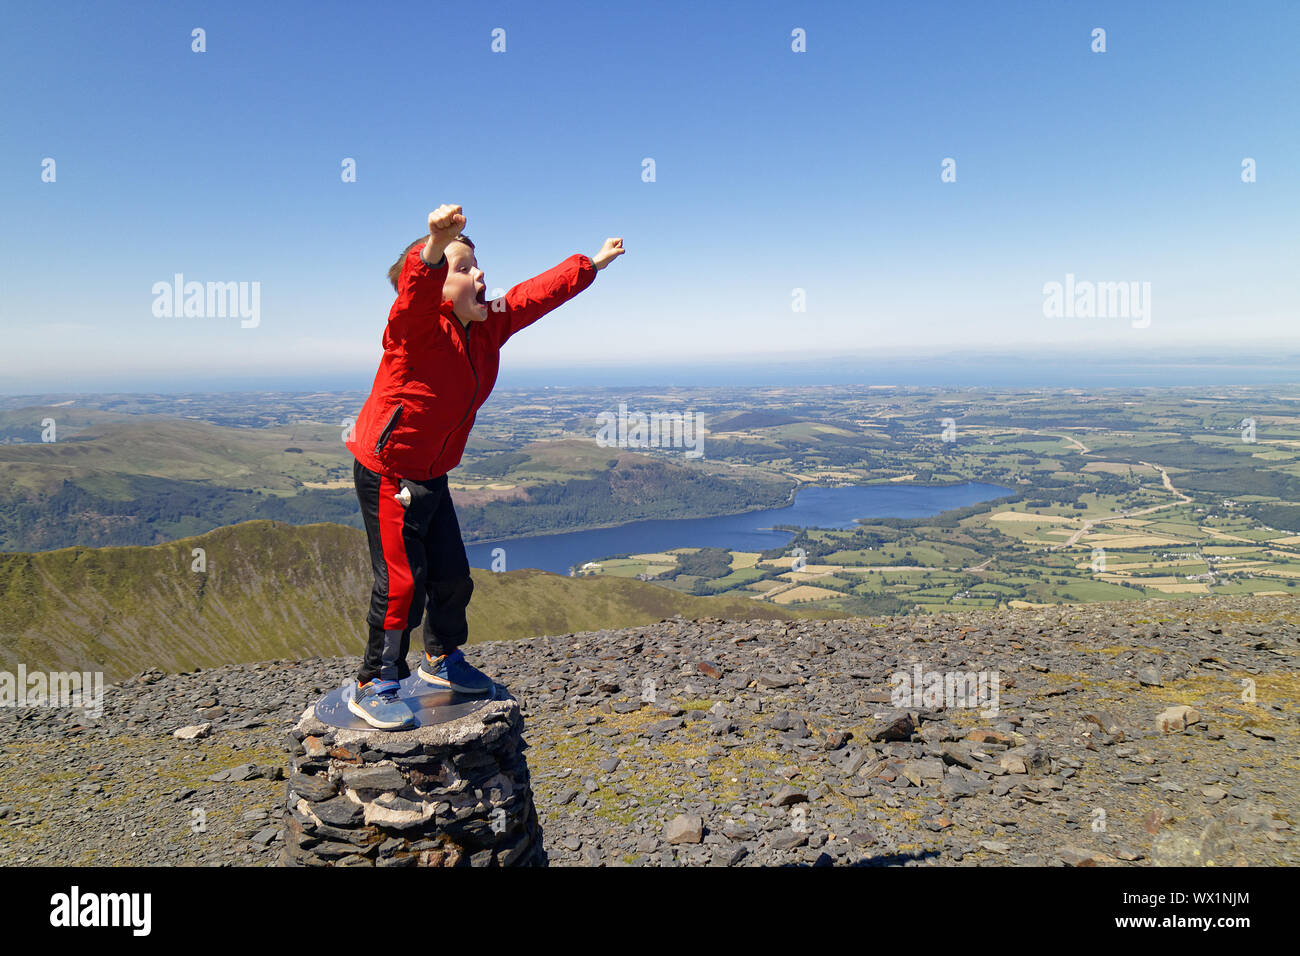 a-young-boy-7-yrs-old-celebrates-on-reaching-the-summit-of-skiddaw-a-mountain-in-the-lake-district-cumbria-uk-WX1NJM.jpg